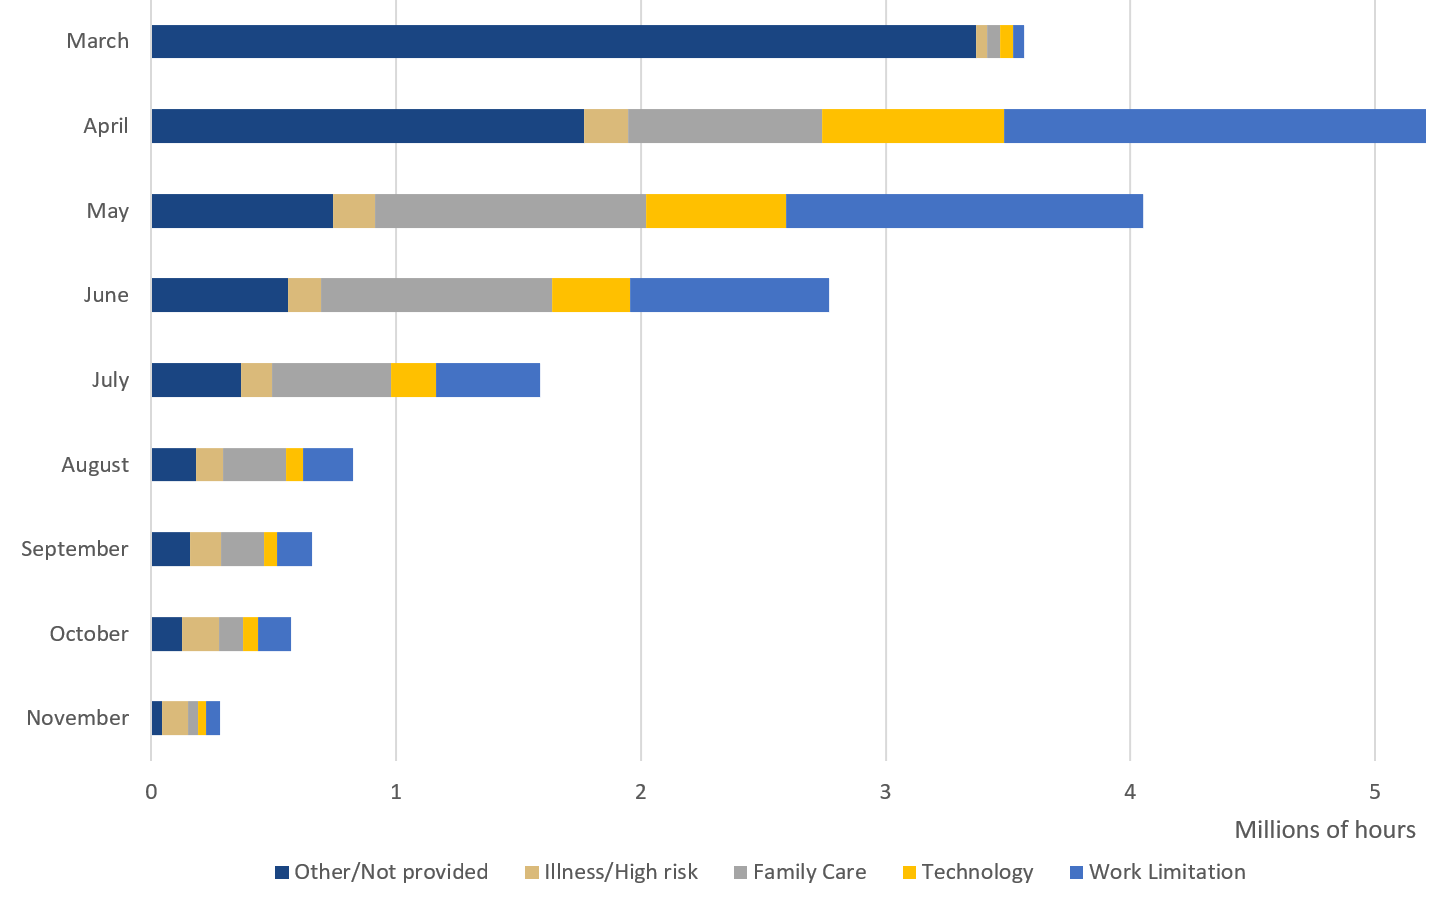 Figure 4: Monthly breakdown of 699 leave by type